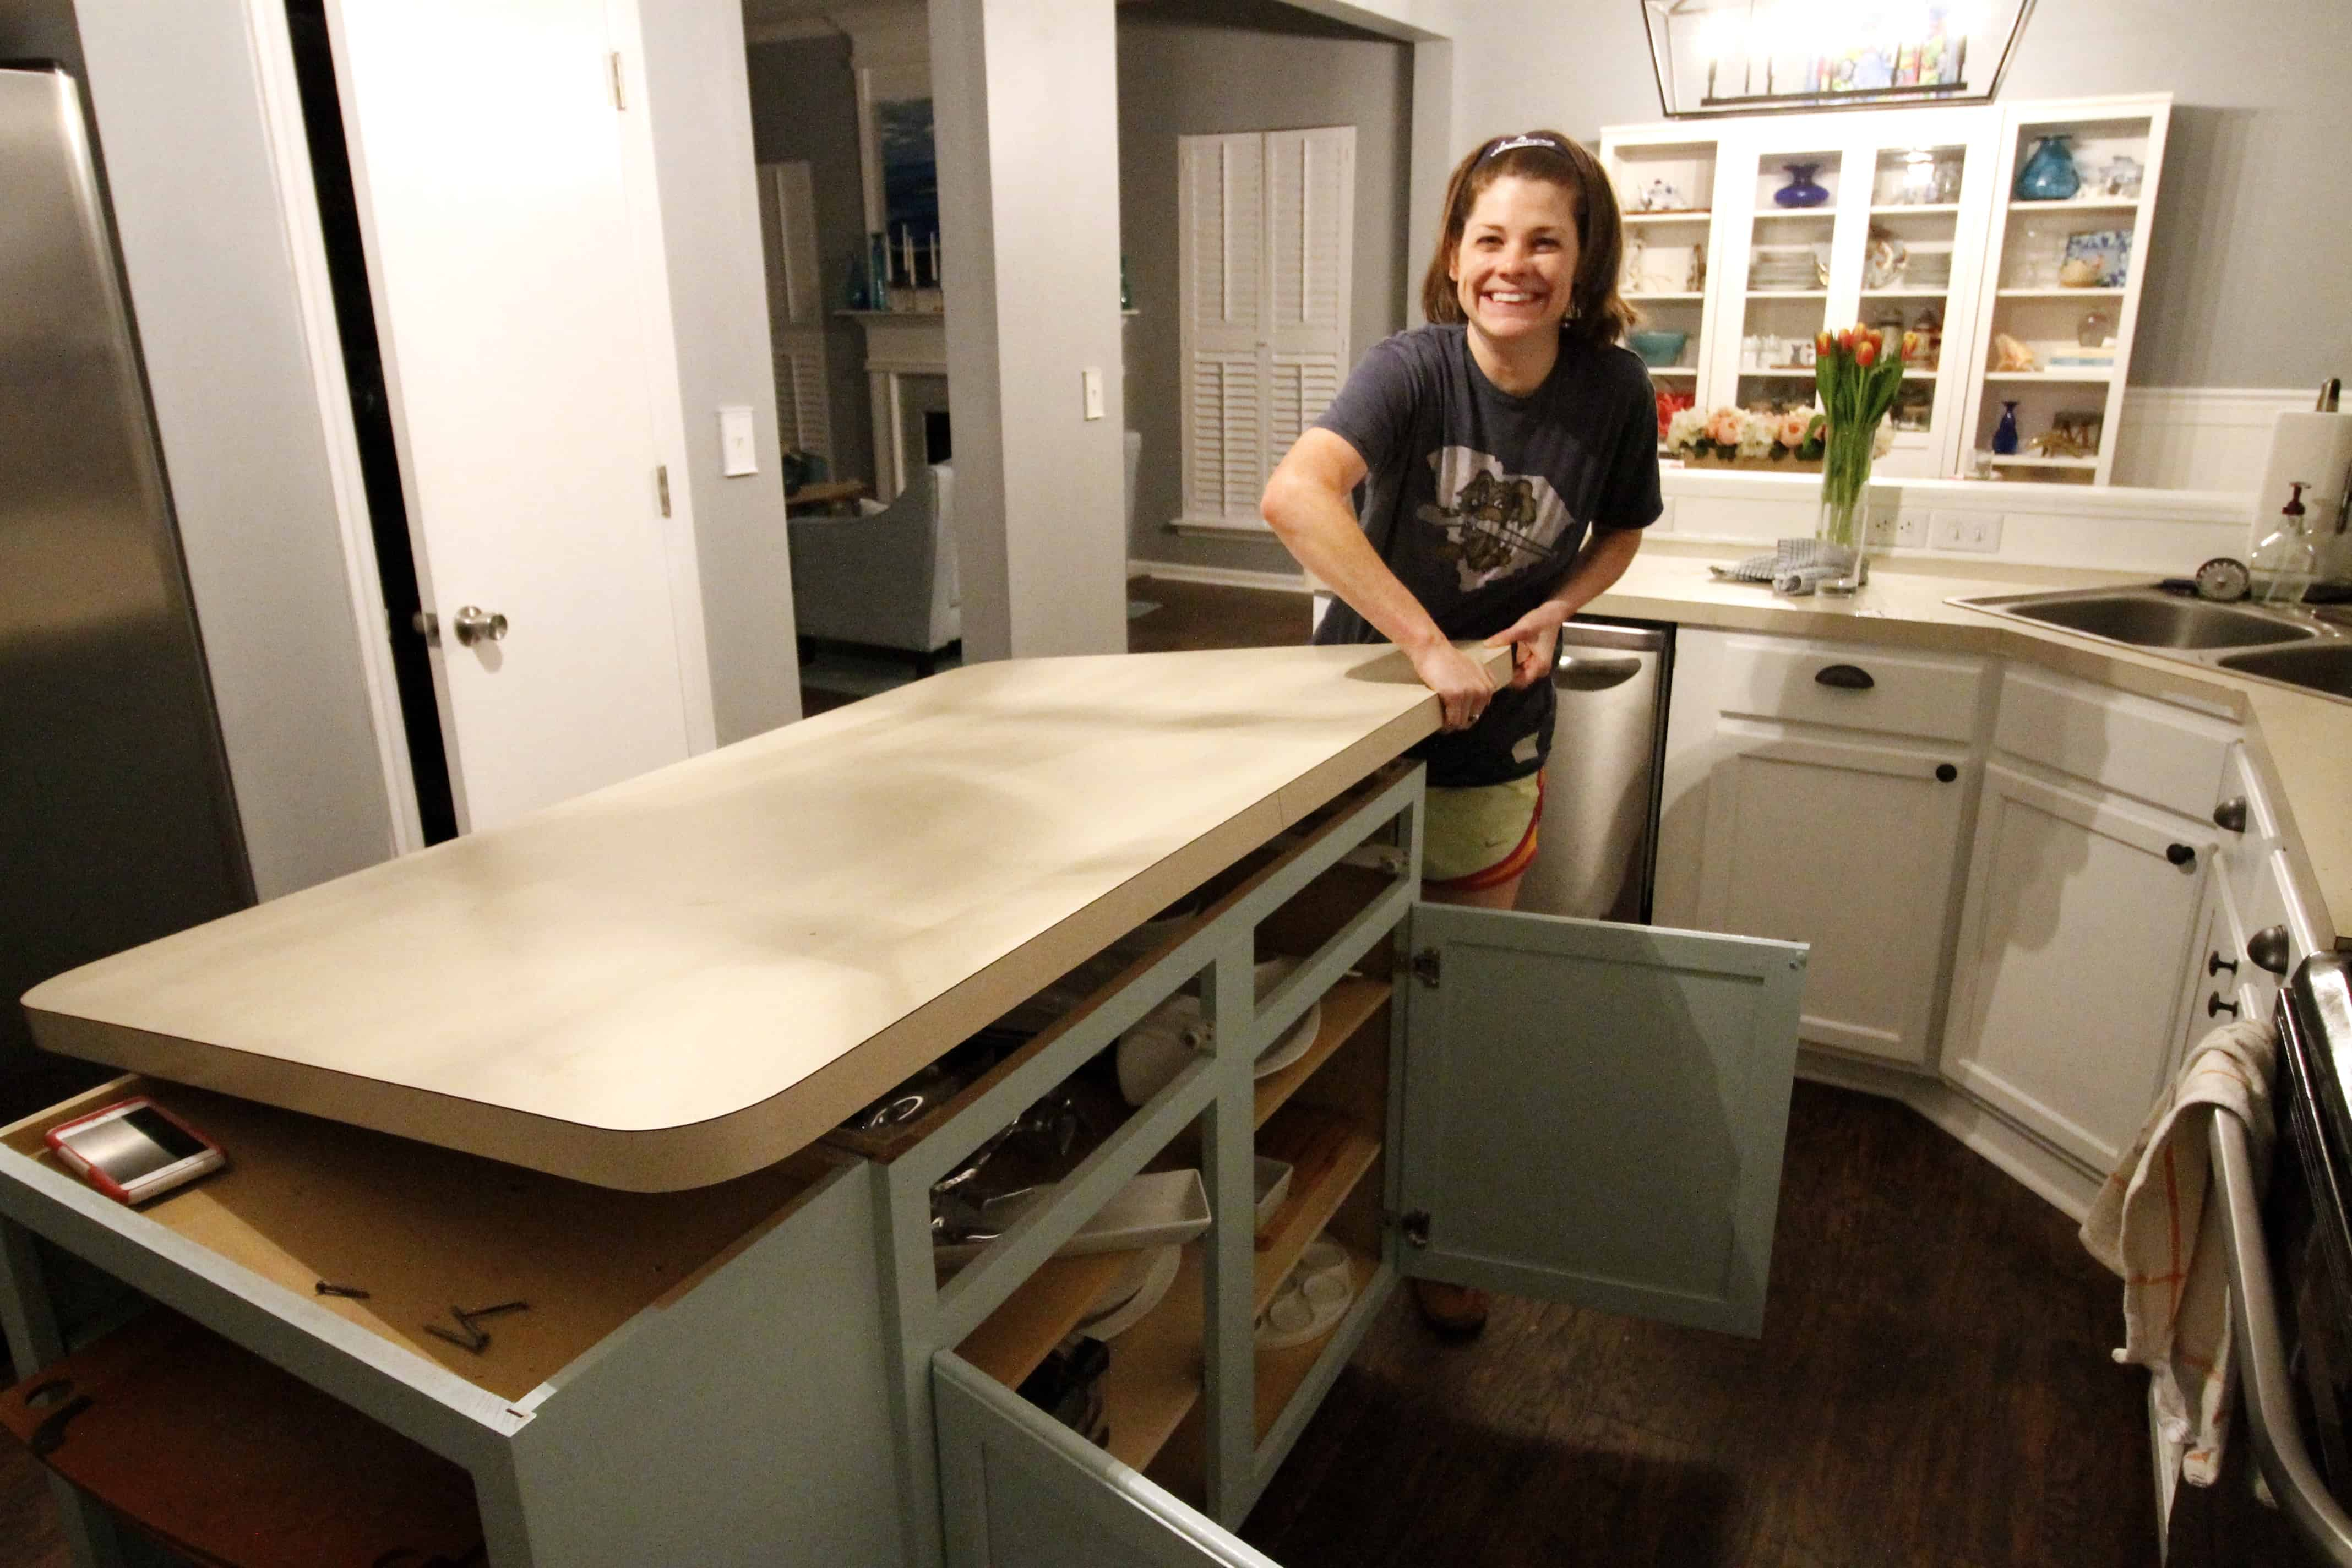 How to remove kitchen cabinets and countertops - Removing The Actual Countertops Was Super Simple They Are Just Screwed In Place If You Look Inside The Cabinet Up At The Underside Of The Counter